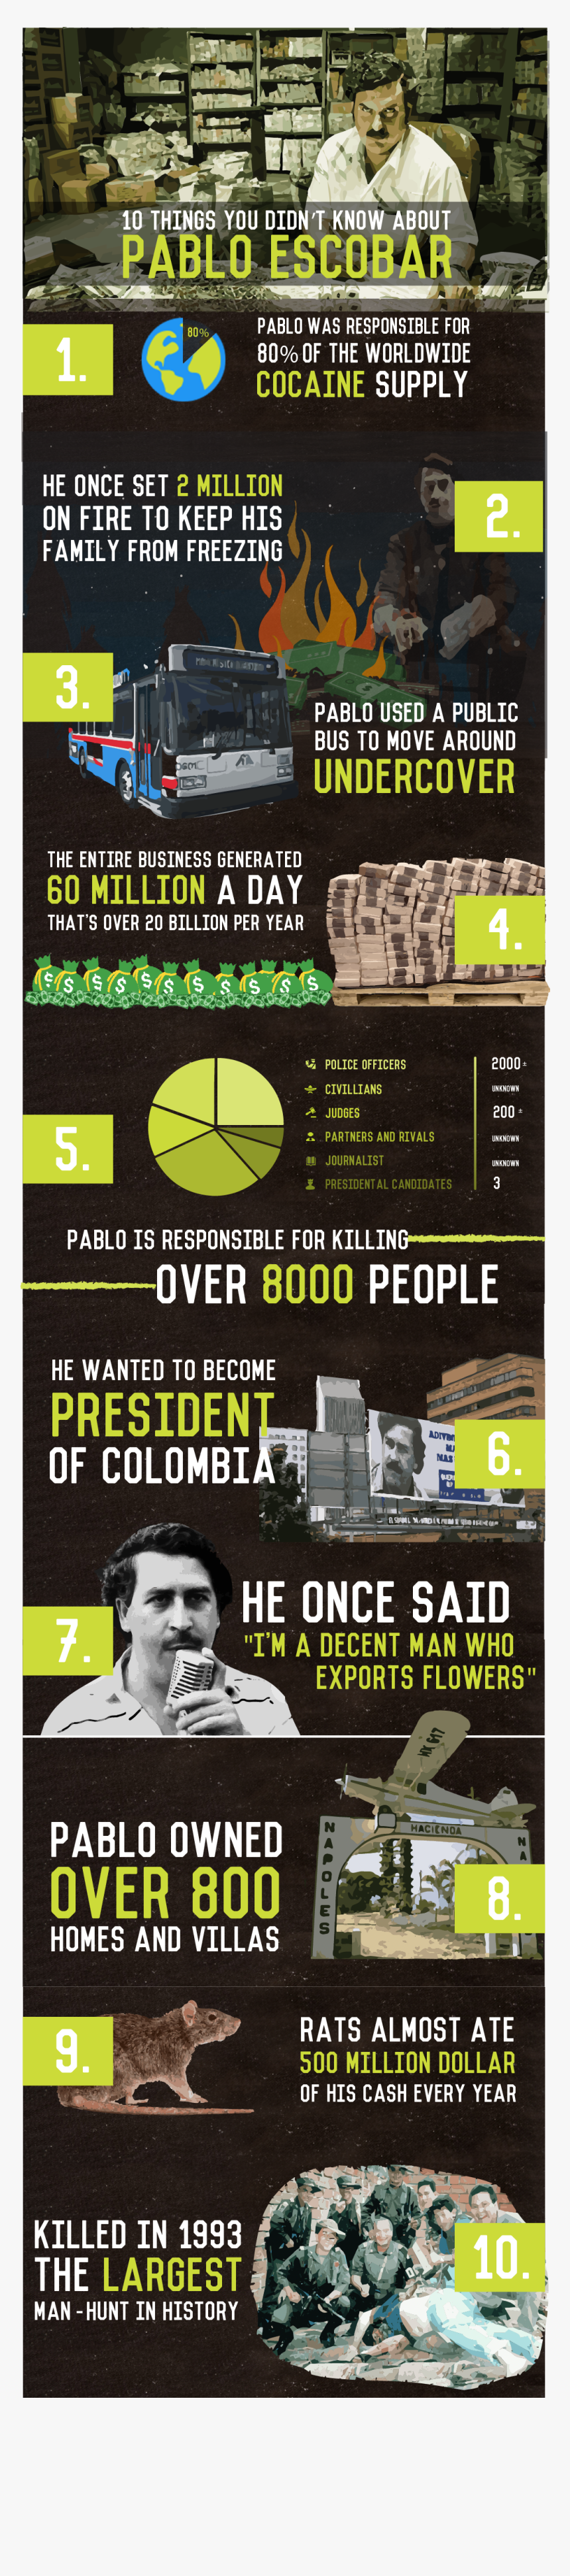 Infographic About Pablo Escobar, HD Png Download, Free Download